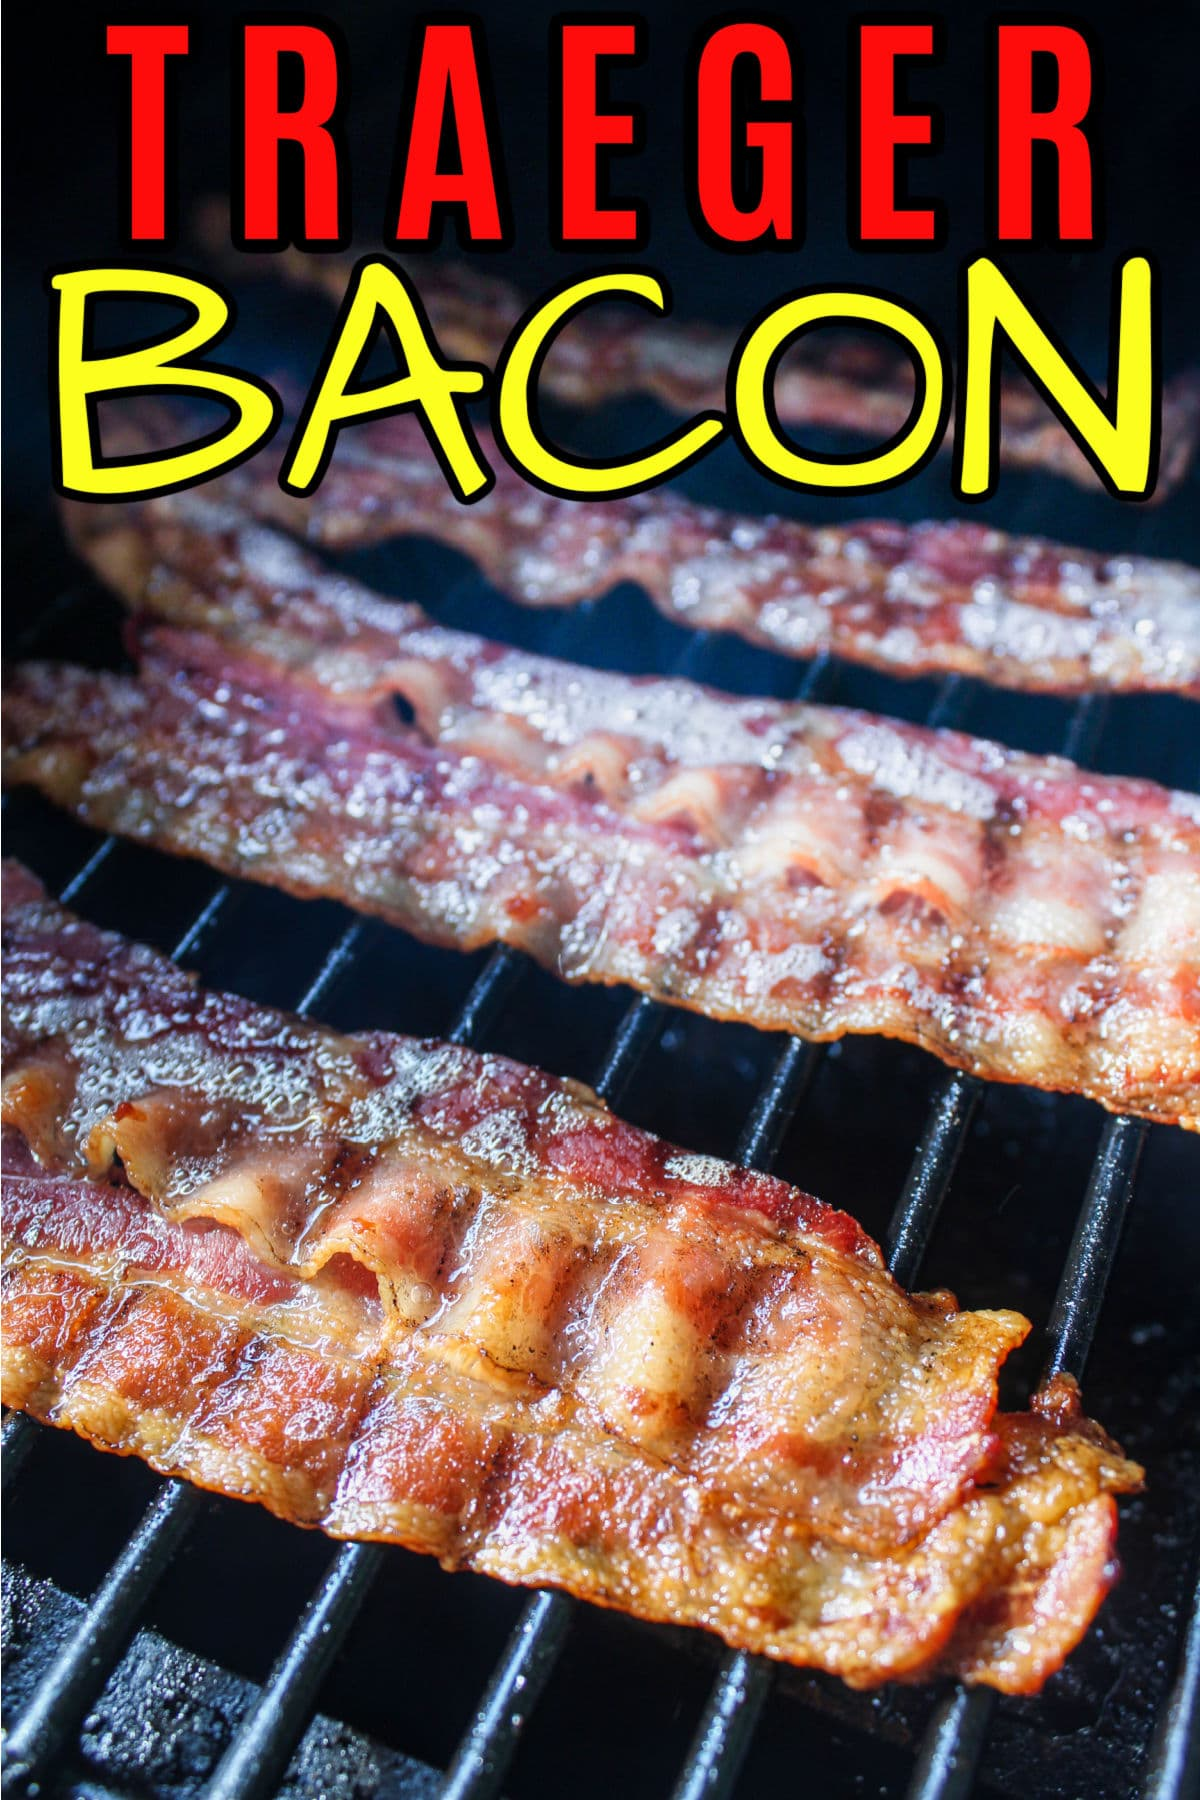 Traeger Grilled Bacon may now be my favorite way to make bacon!!! It's super simple - pop it on the grill and let it go - and it comes out magical! The bacon is crispy in all the right spots but the fatty part still has flavor. Oh man - I could have eaten the whole pound!   via @foodhussy